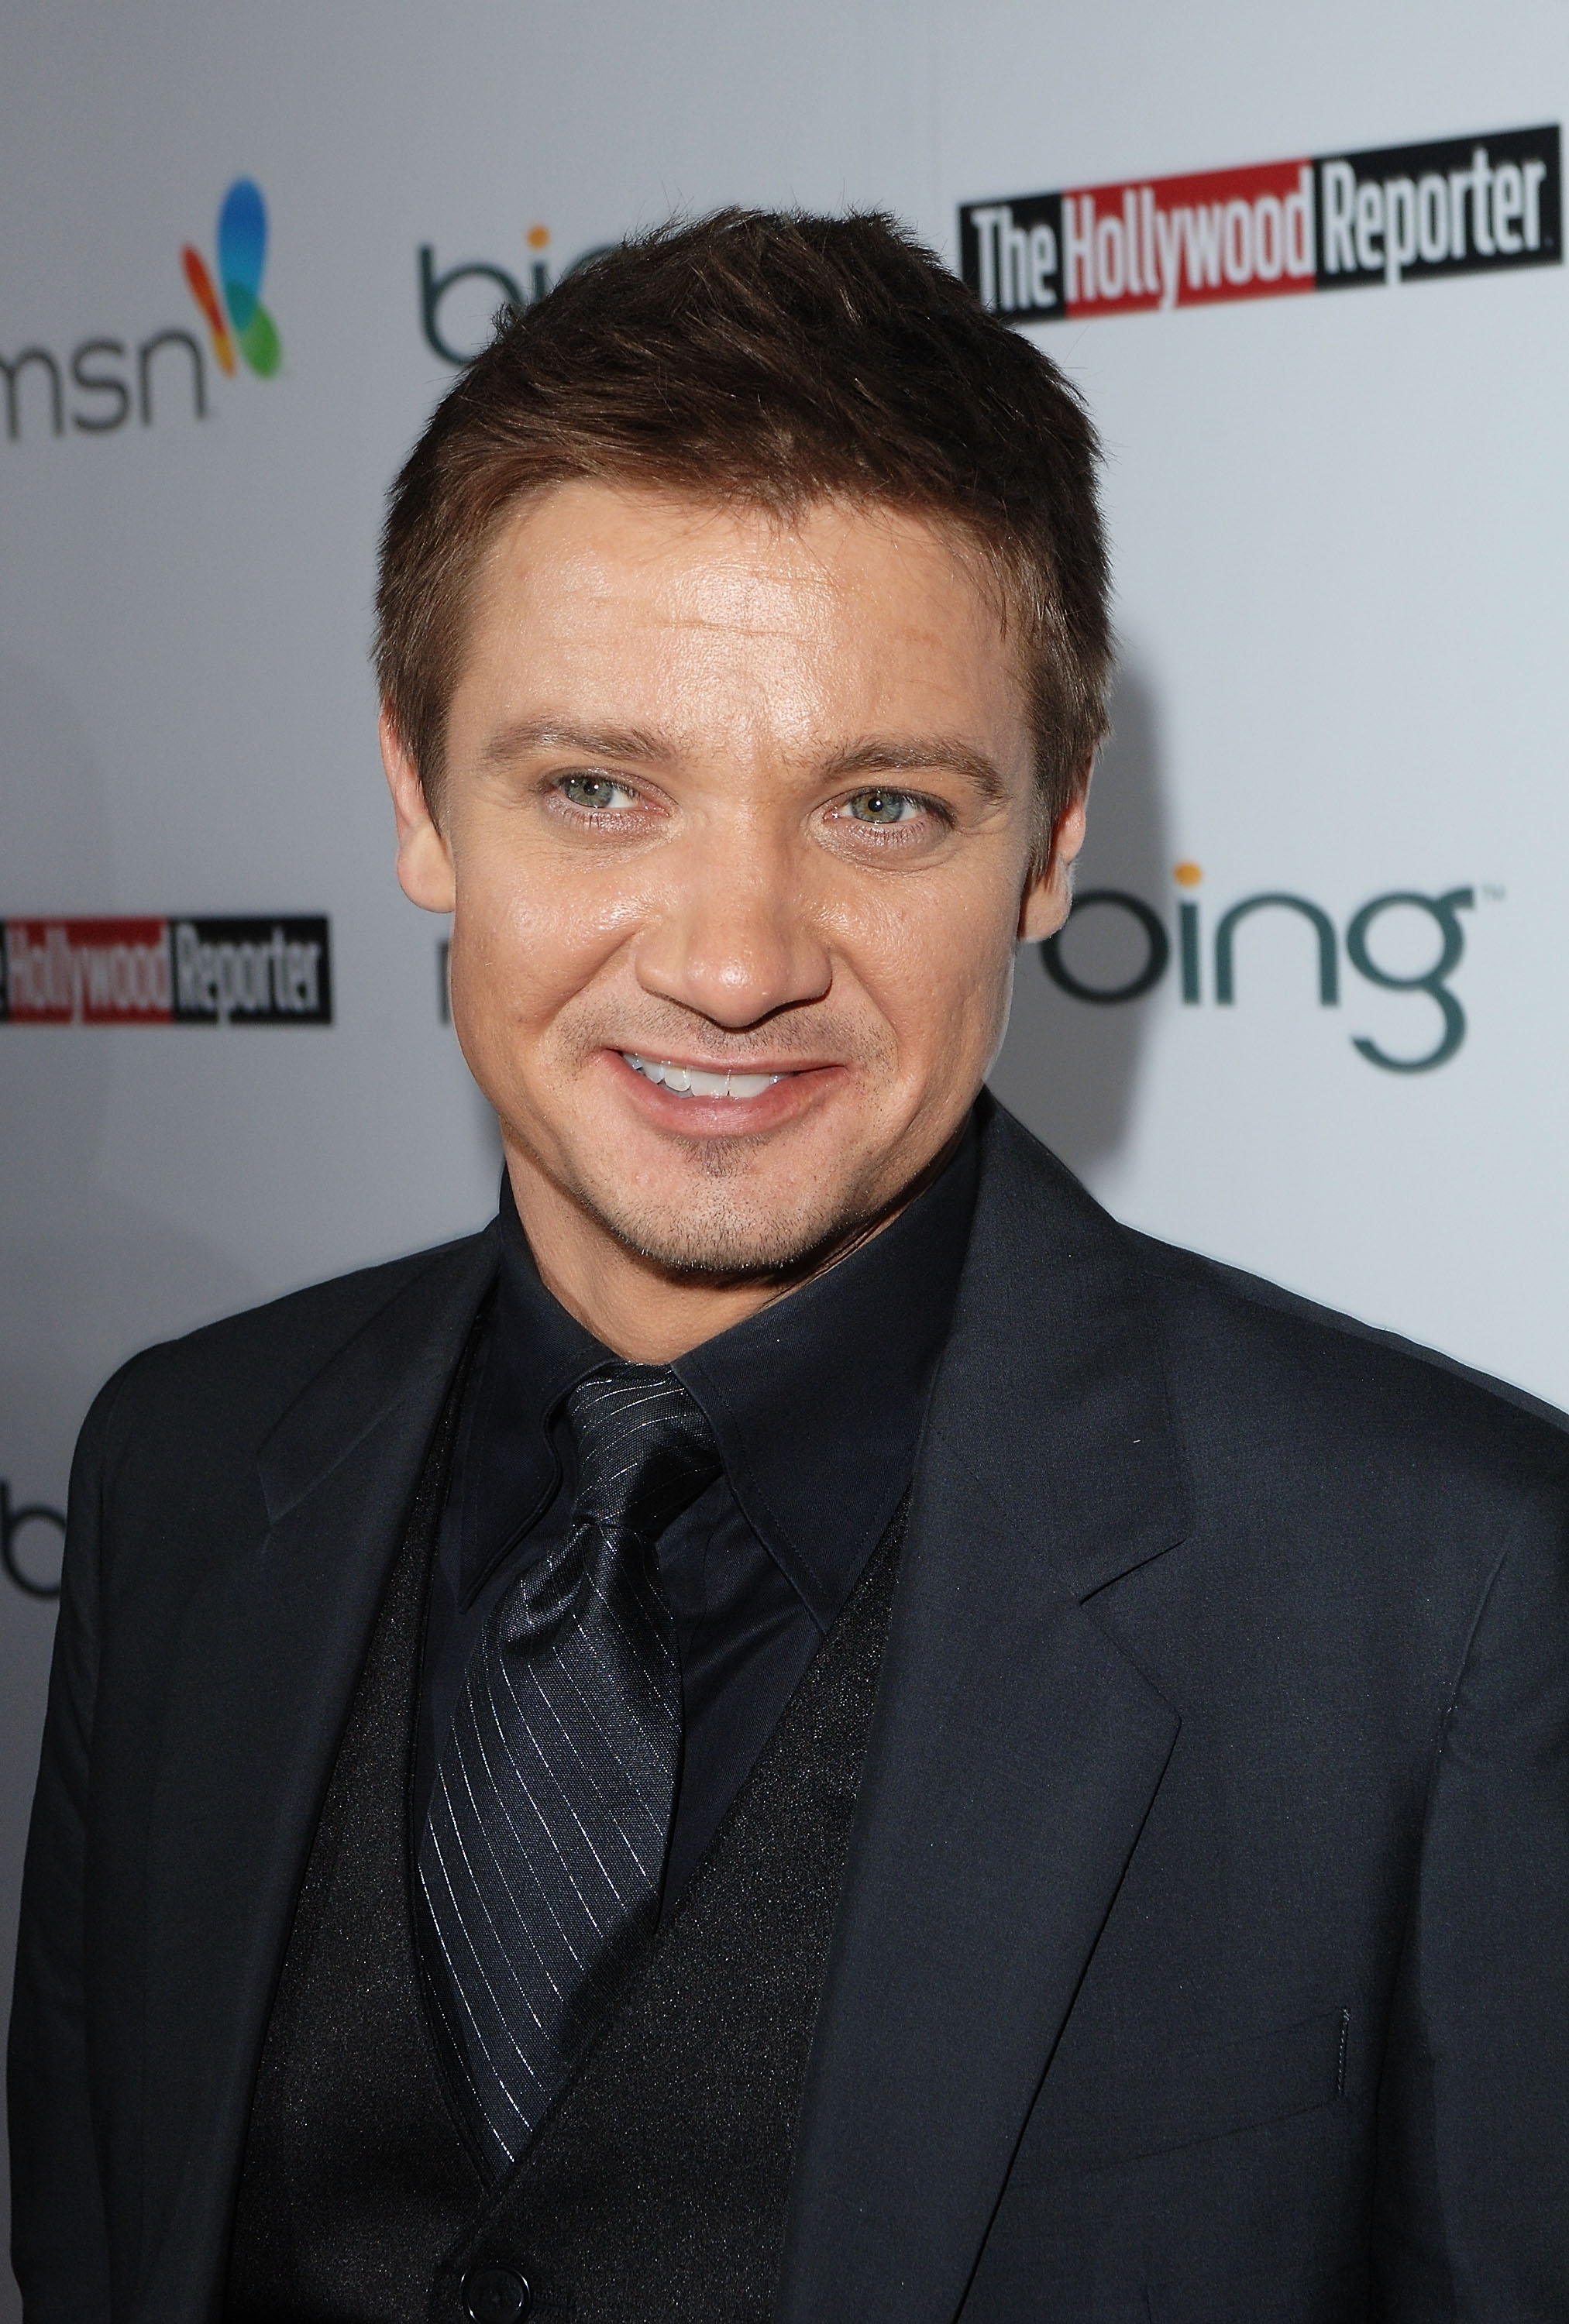 Casting Call: Jeremy Renner Joins Tom Cruise For 'Mission